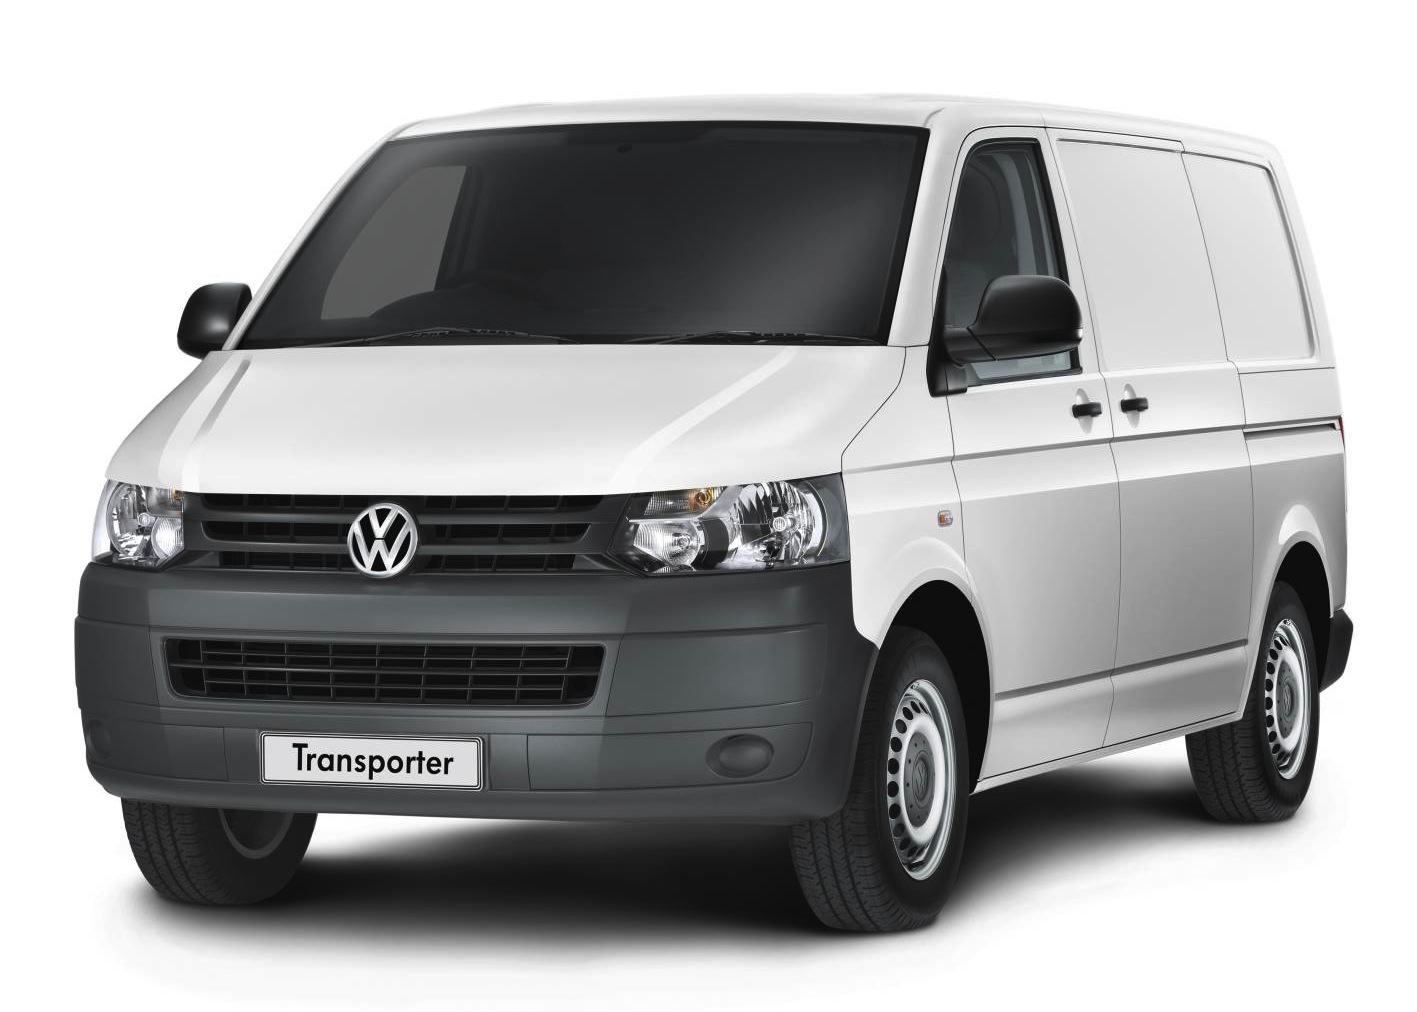 Volkswagen Transporter Reviews 2012 Sprinter Van Fuel Filter